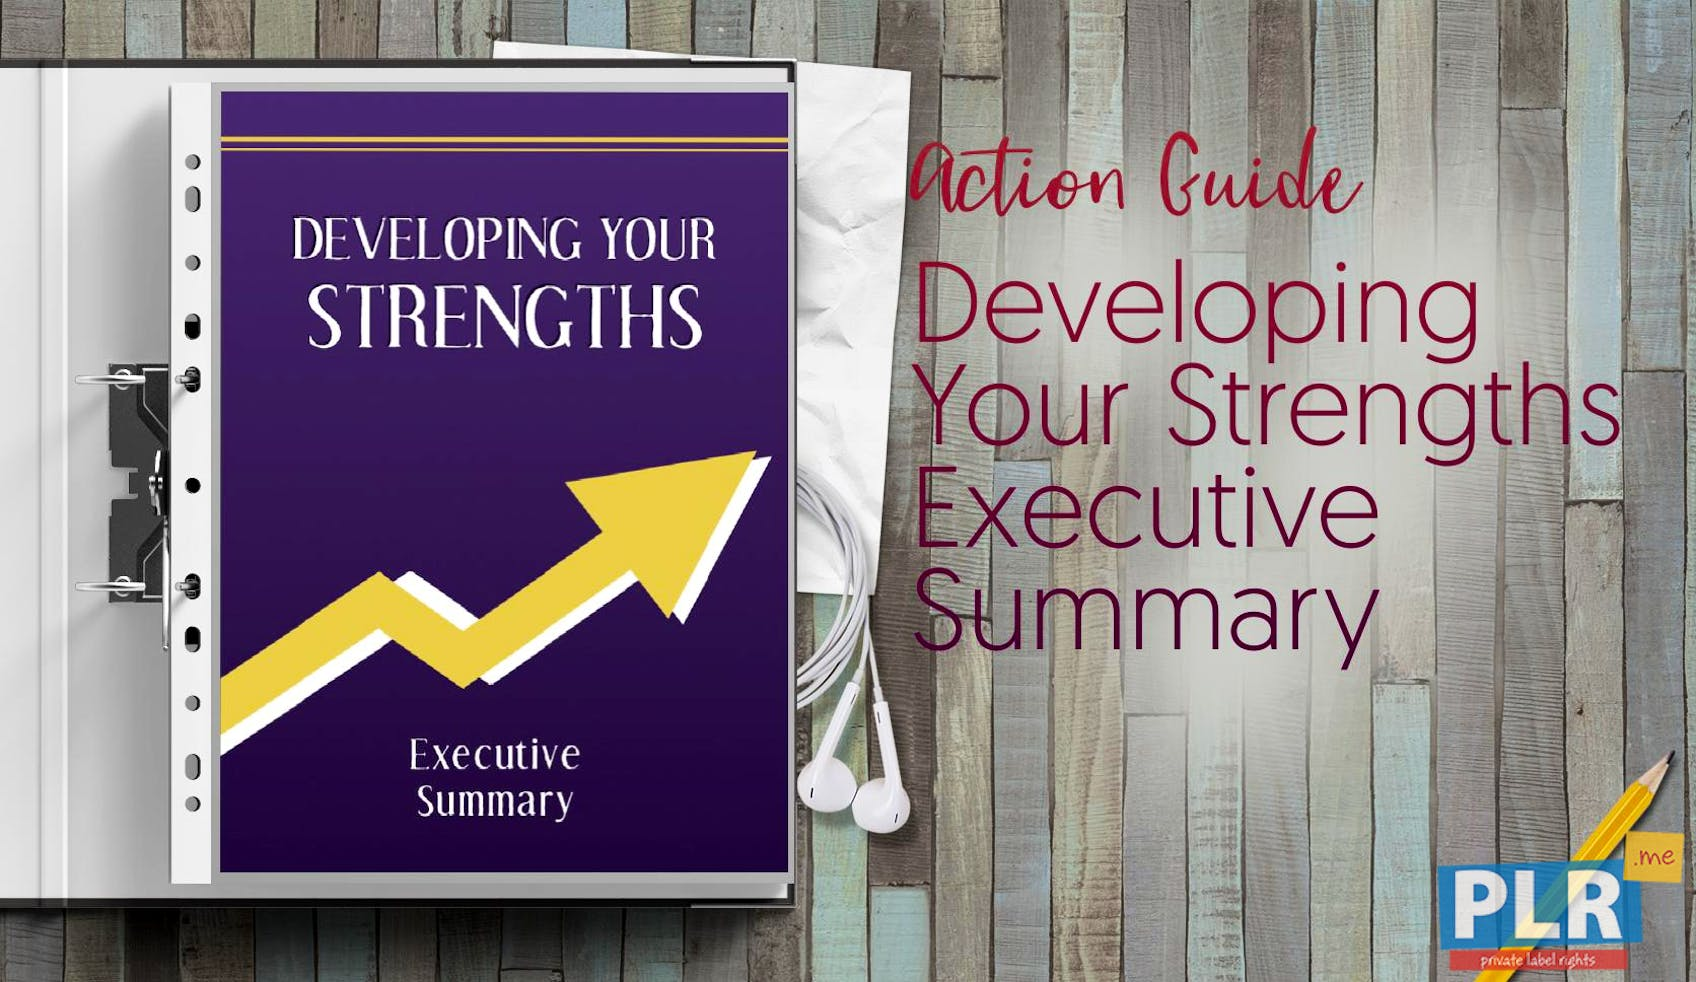 Developing Your Strengths Executive Summary